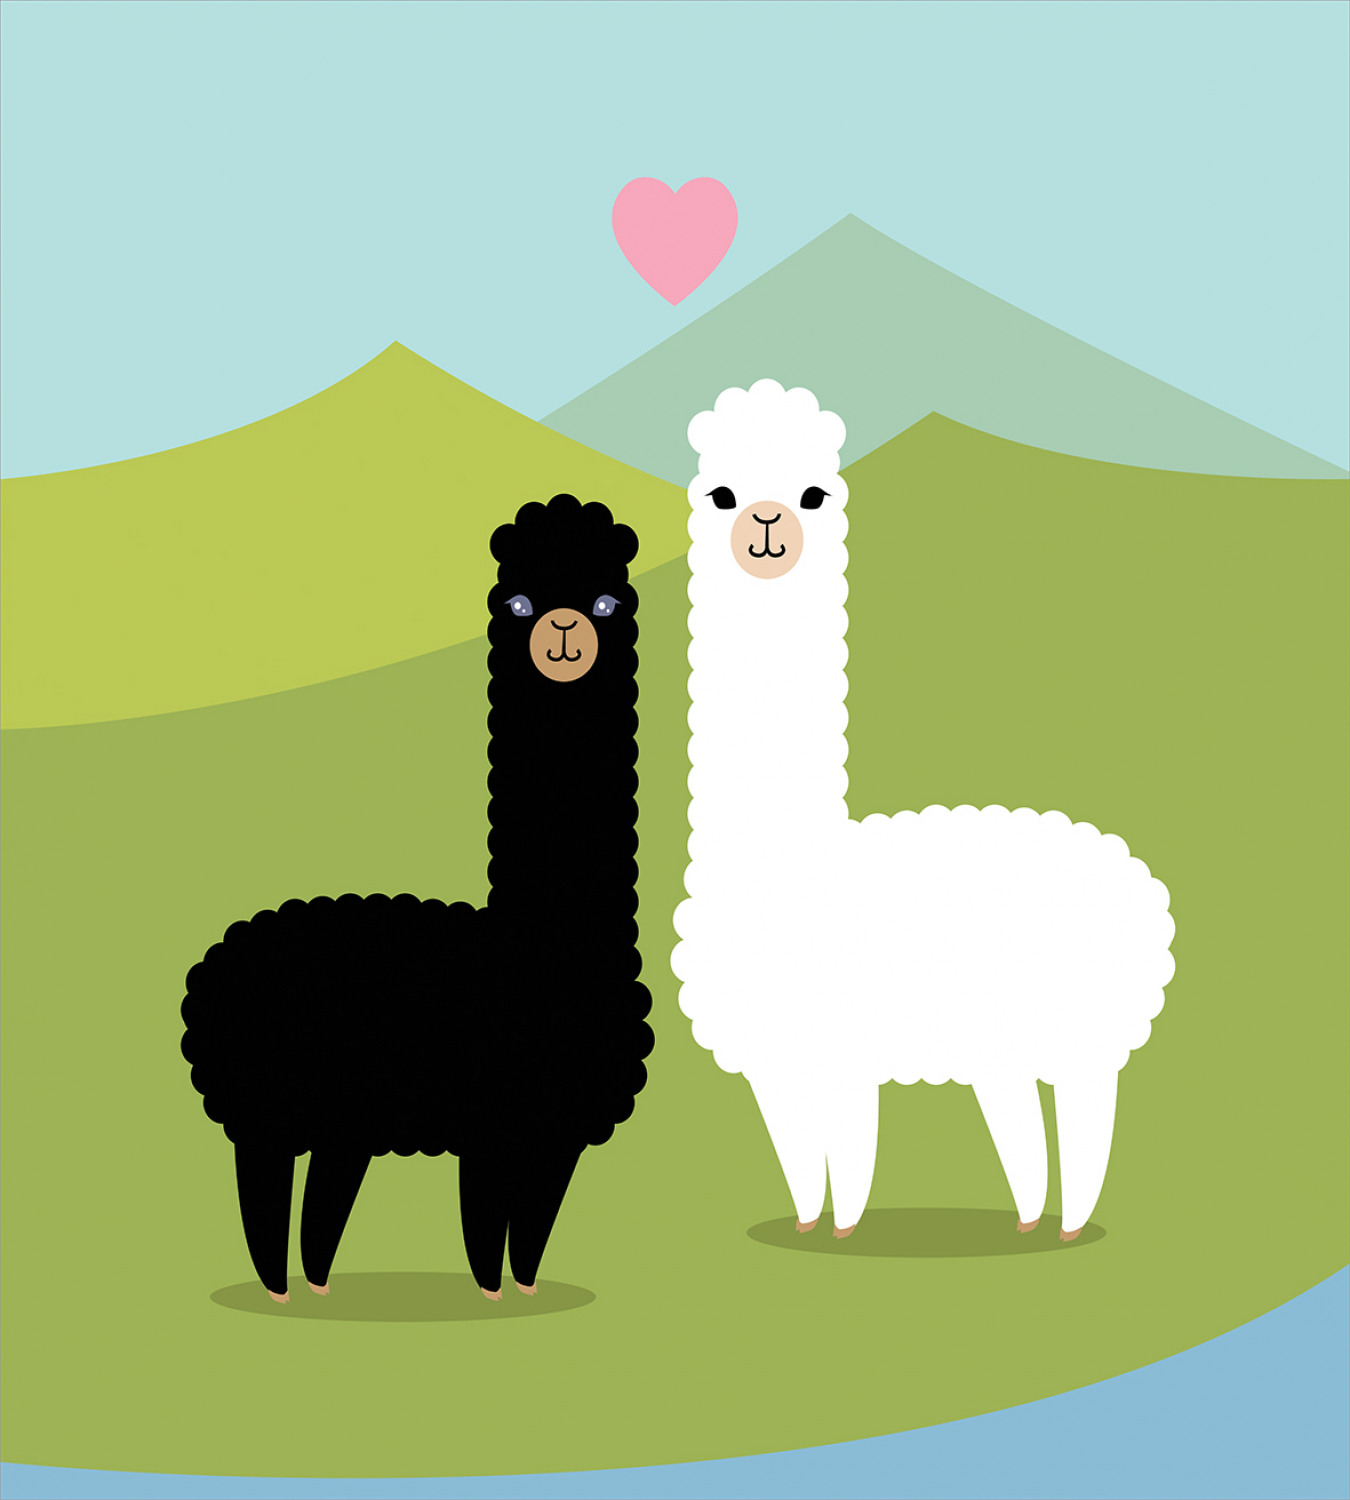 Llama-Duvet-Cover-Set-with-Pillow-Shams-Animals-in-Love-on-Hill-Print thumbnail 3